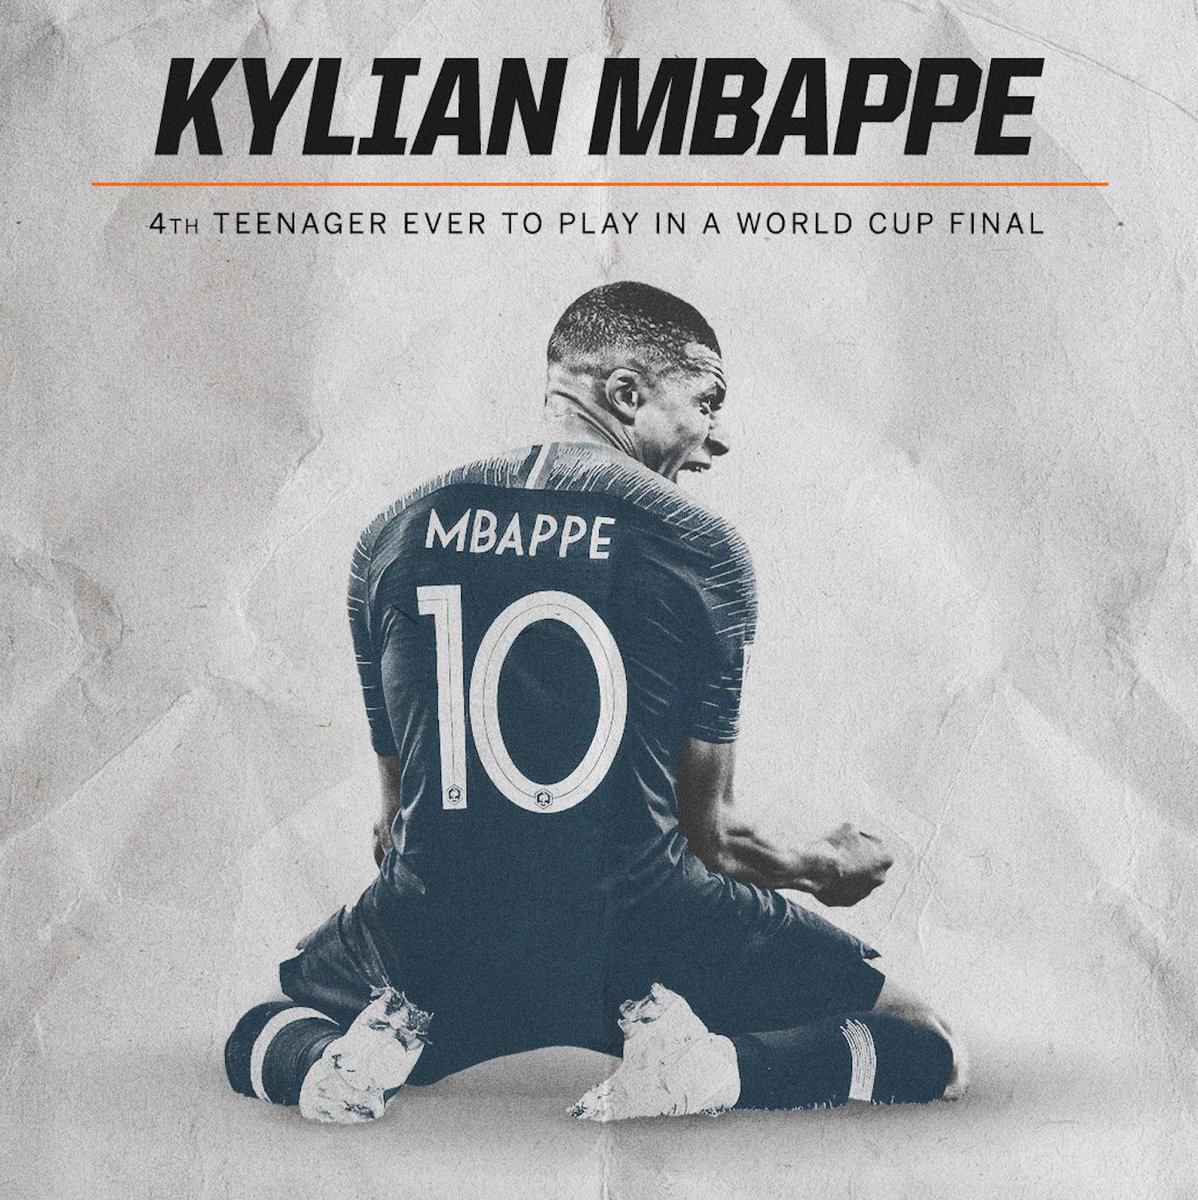 1950 🇺🇾 Ruben Morán (19) 1958 🇧🇷 Pelé (17) 1982 🇮🇹 Giuseppe Bergomi (18) 2018 🇫🇷 Kylian Mbappé (19) Kylian Mbappé becomes only the fourth teenager to play in a #WorldCupFinal